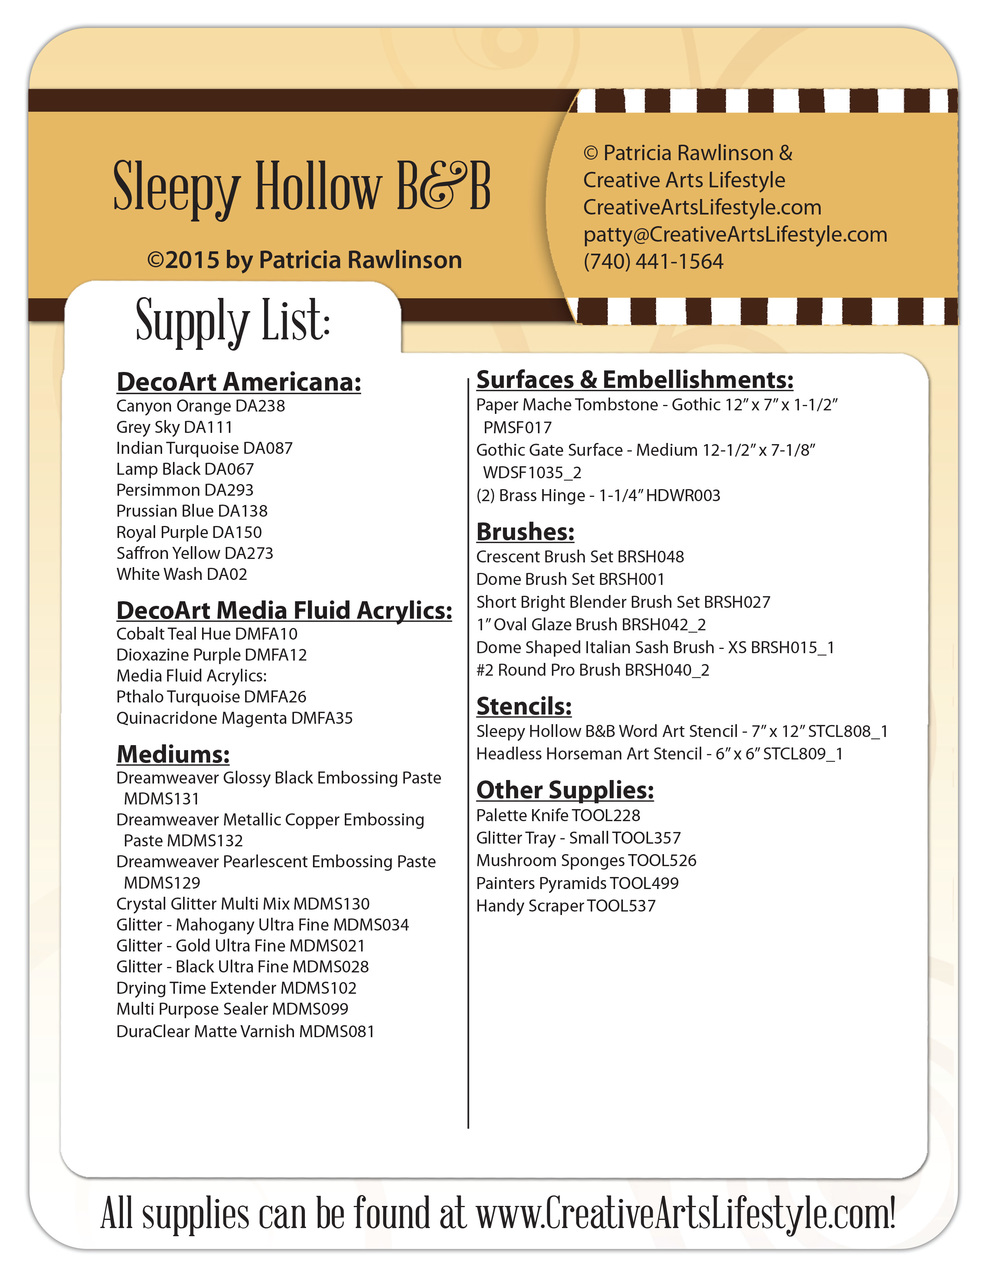 Sleepy Hollow B&B Pattern Packet - Patricia Rawlinson